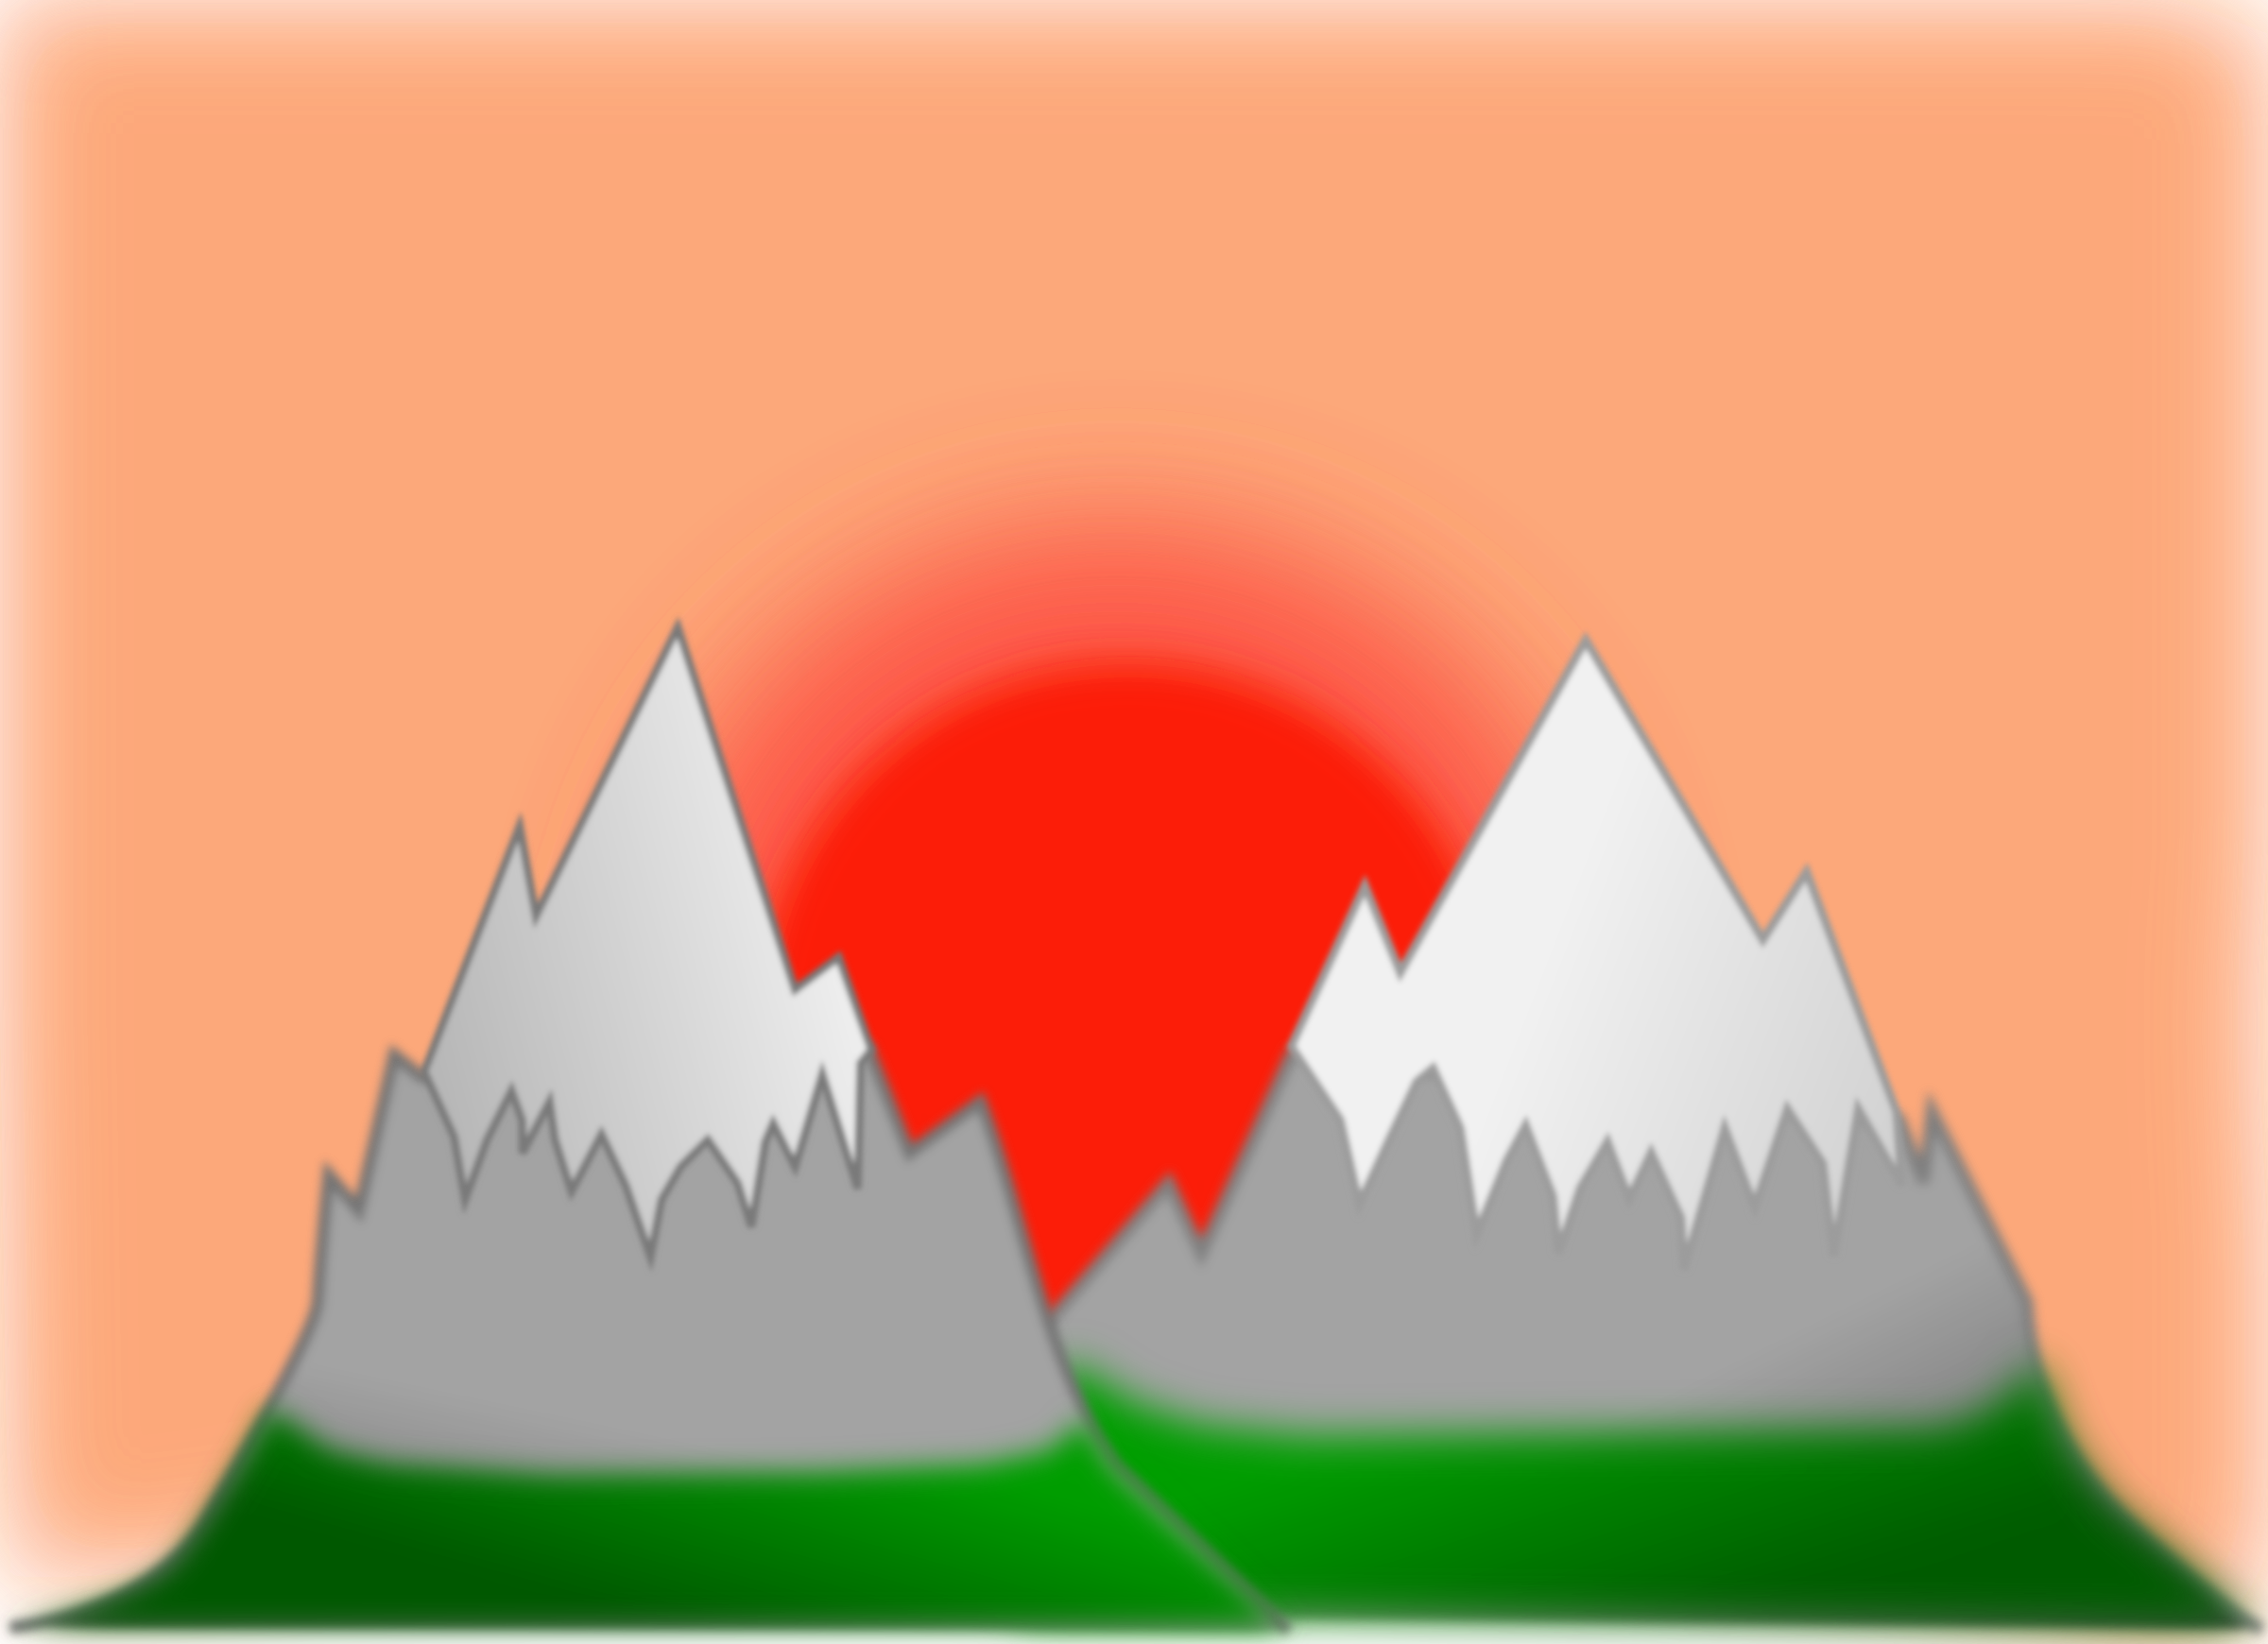 Sunset clipart mountains. Mountain simple big image